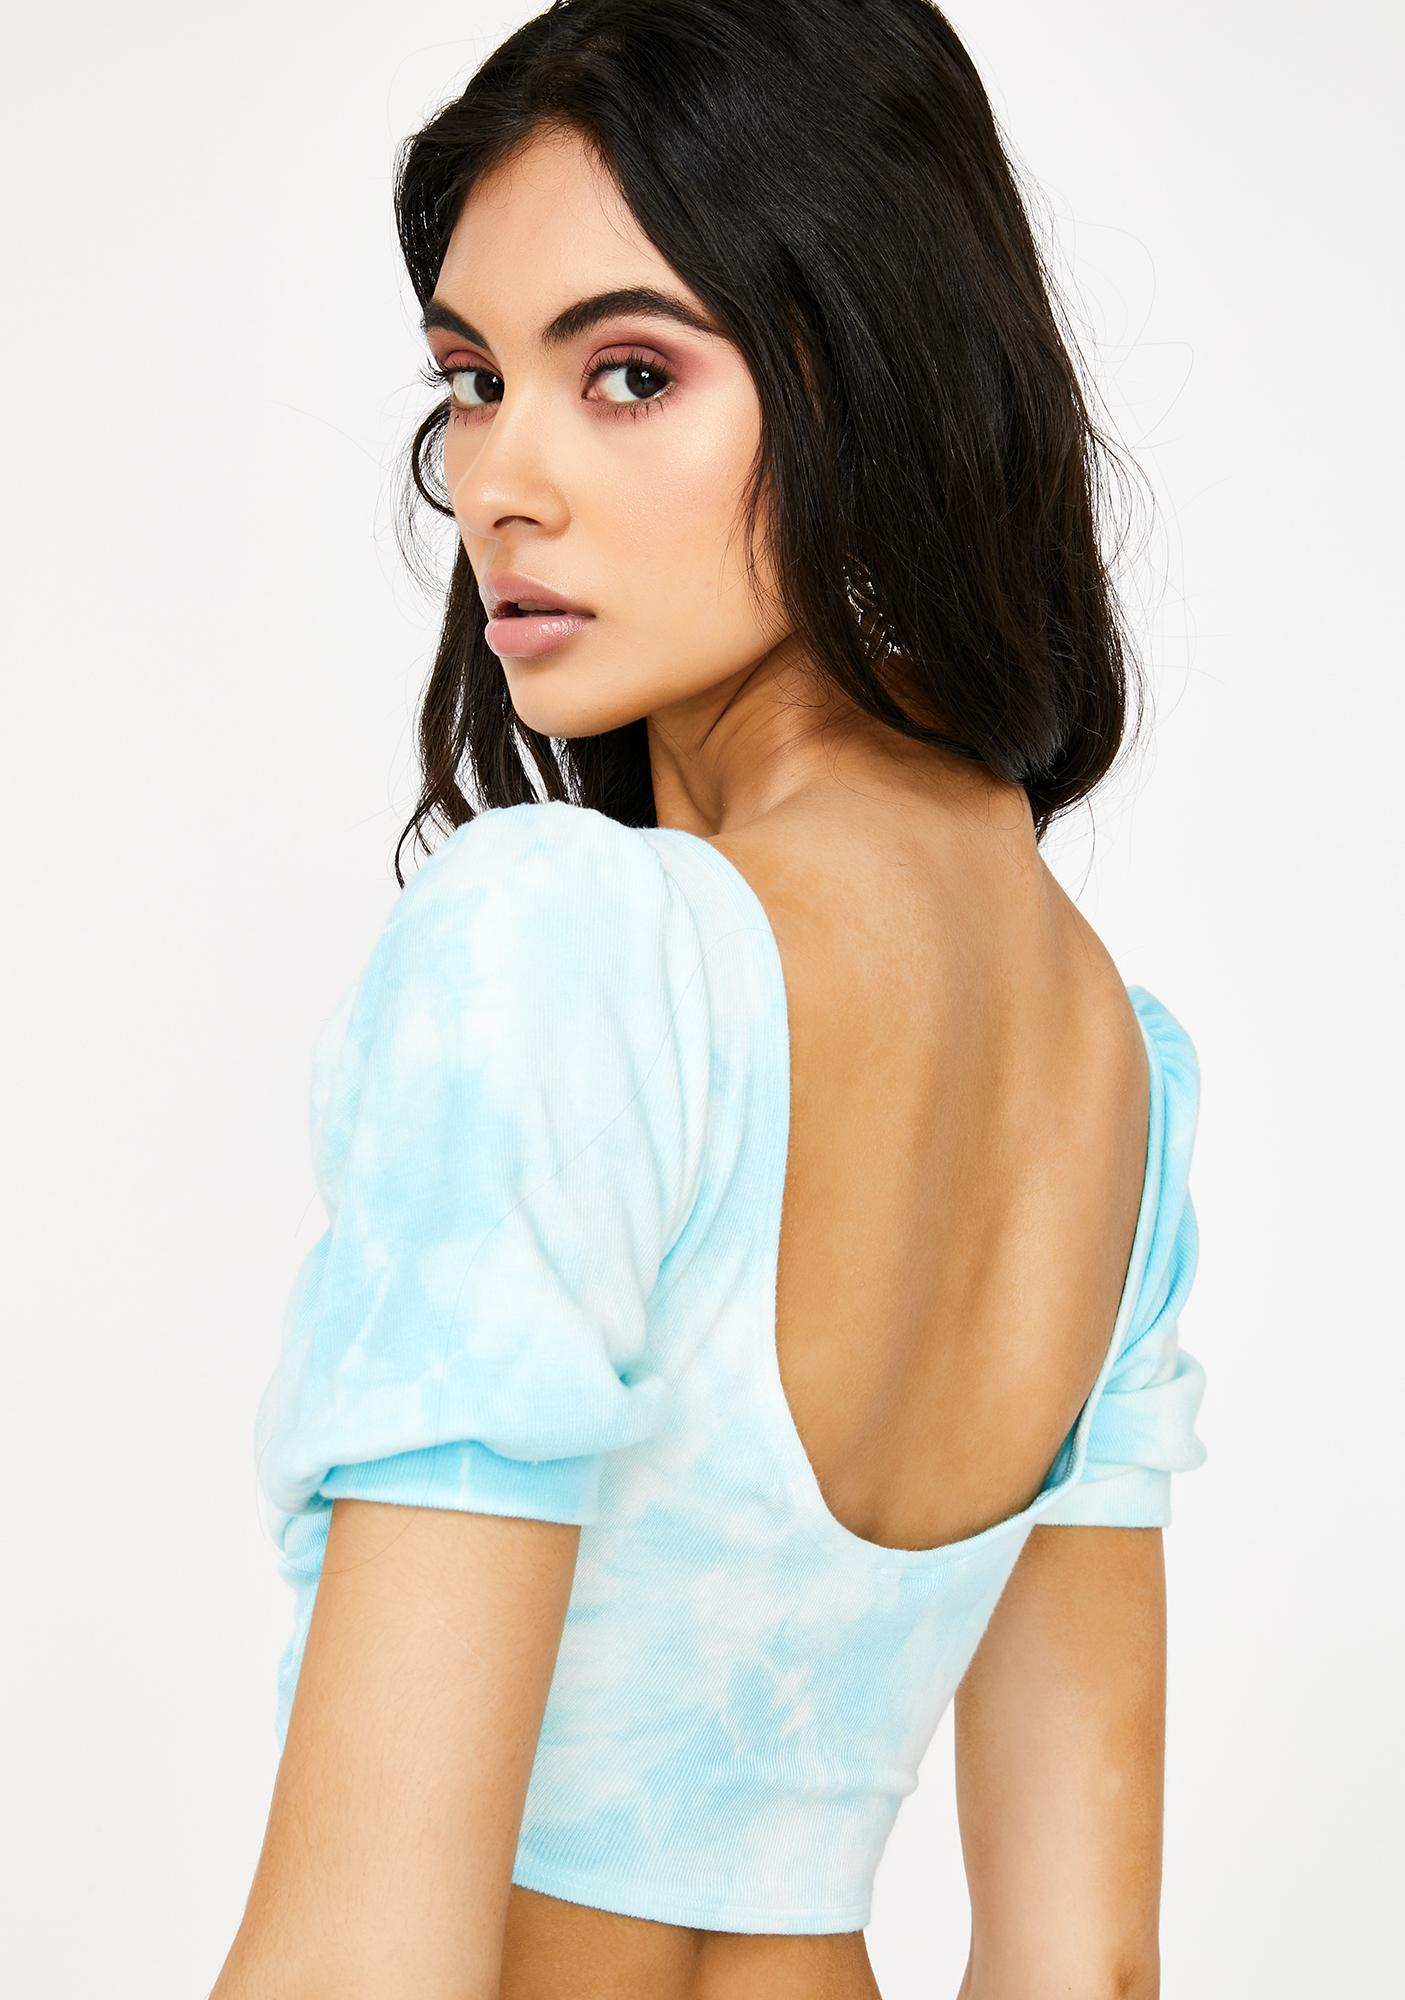 Selkie Woodstock Crop Top